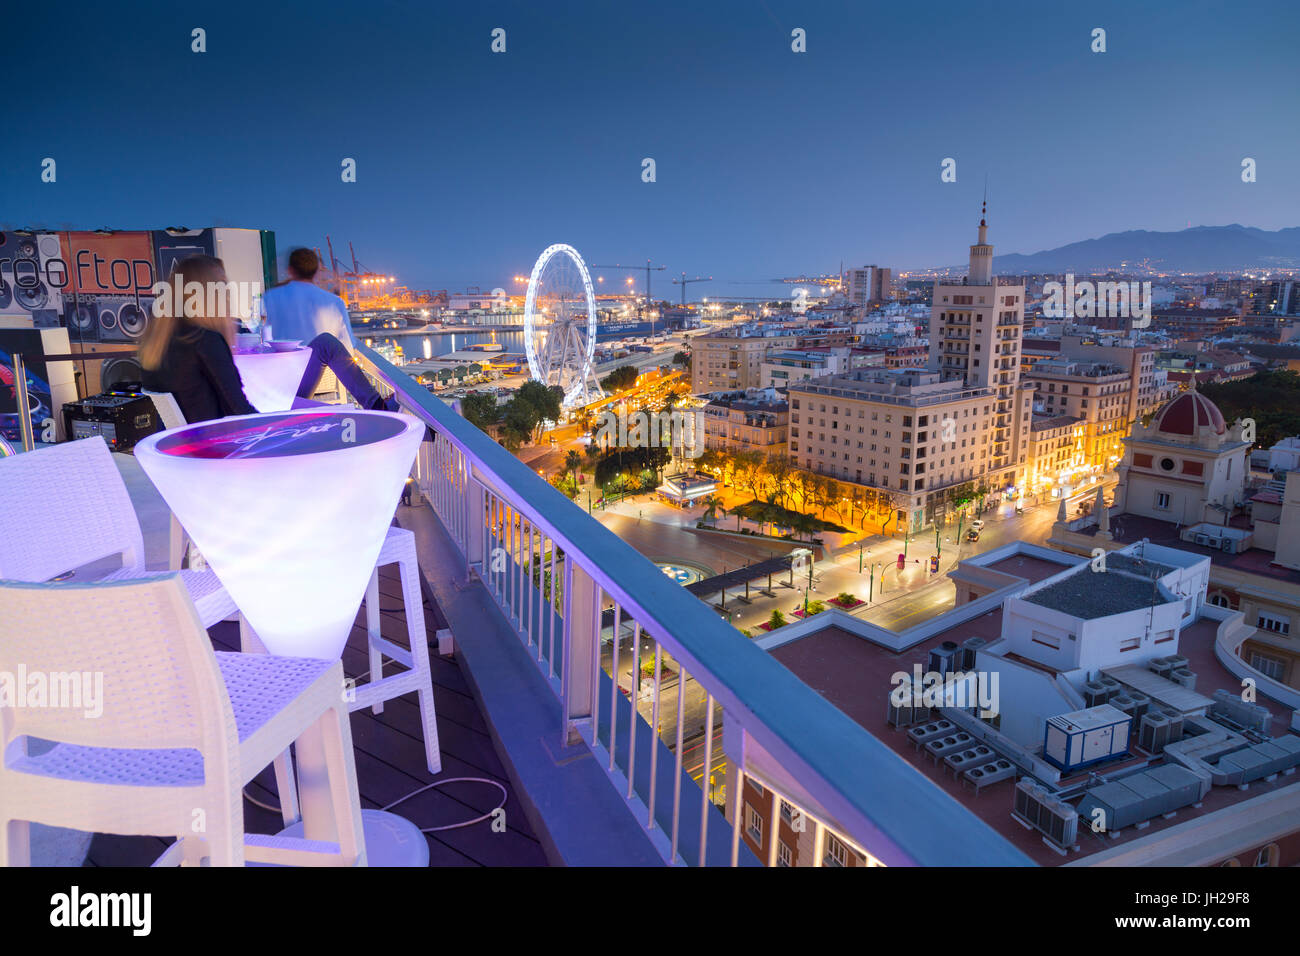 Elevated view of Malaga Marina and old town at dusk, Malaga, Costa del Sol, Andalusia, Spain, Europe - Stock Image